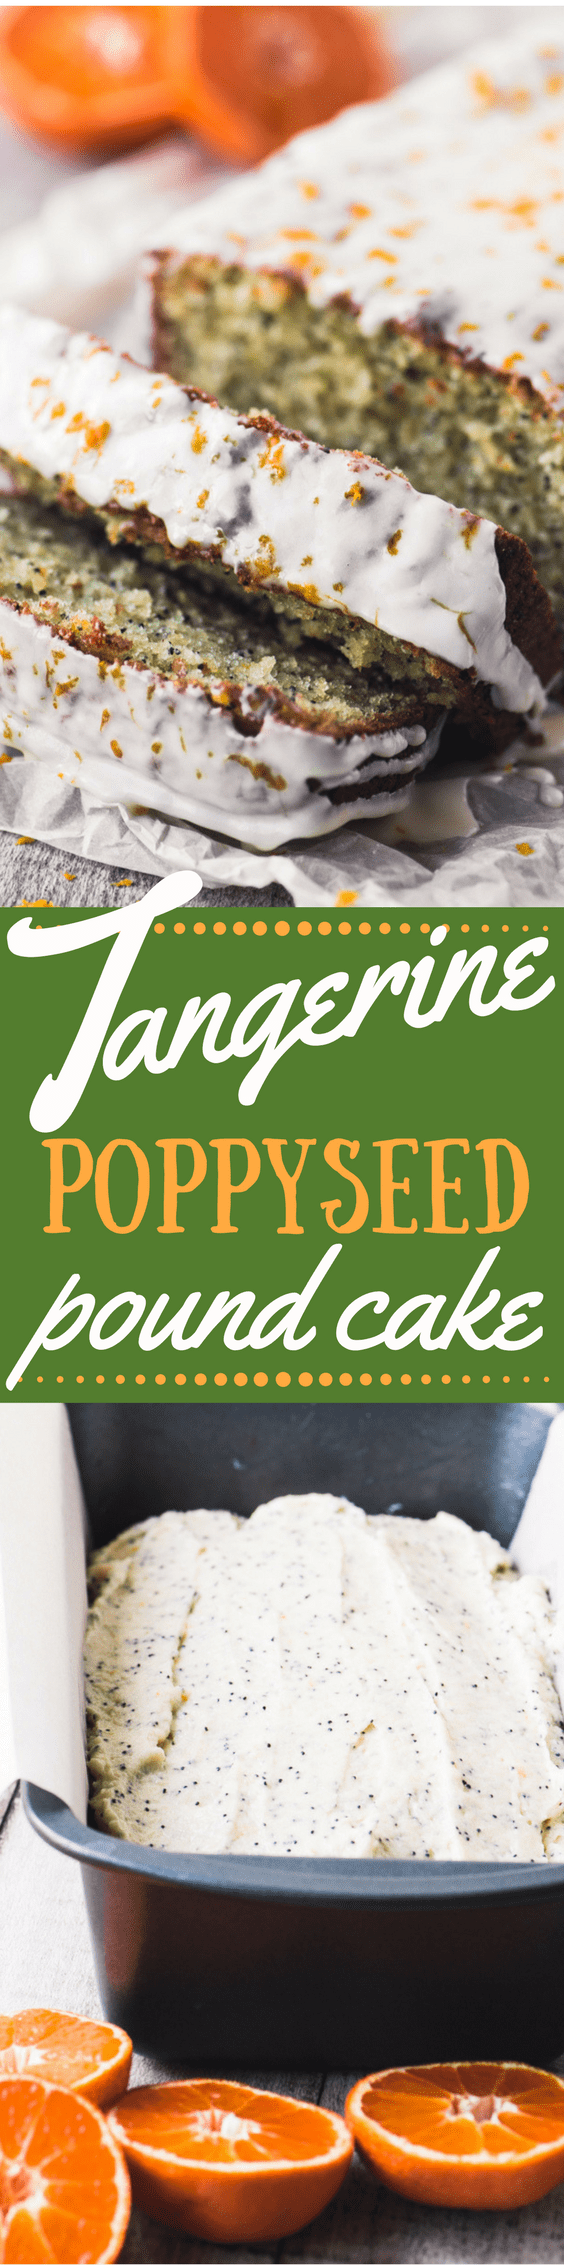 Tangerine Poppy Seed Pound Cake is bursting with citrus flavor and crunchy poppy seeds ~ and just when you thought winter had nothing fresh to offer! #cake #besttangerinecake #poppyseedcake #recipe #coffeecake #poundcake #citrus #tangerines #dessert #brunch #breakfast